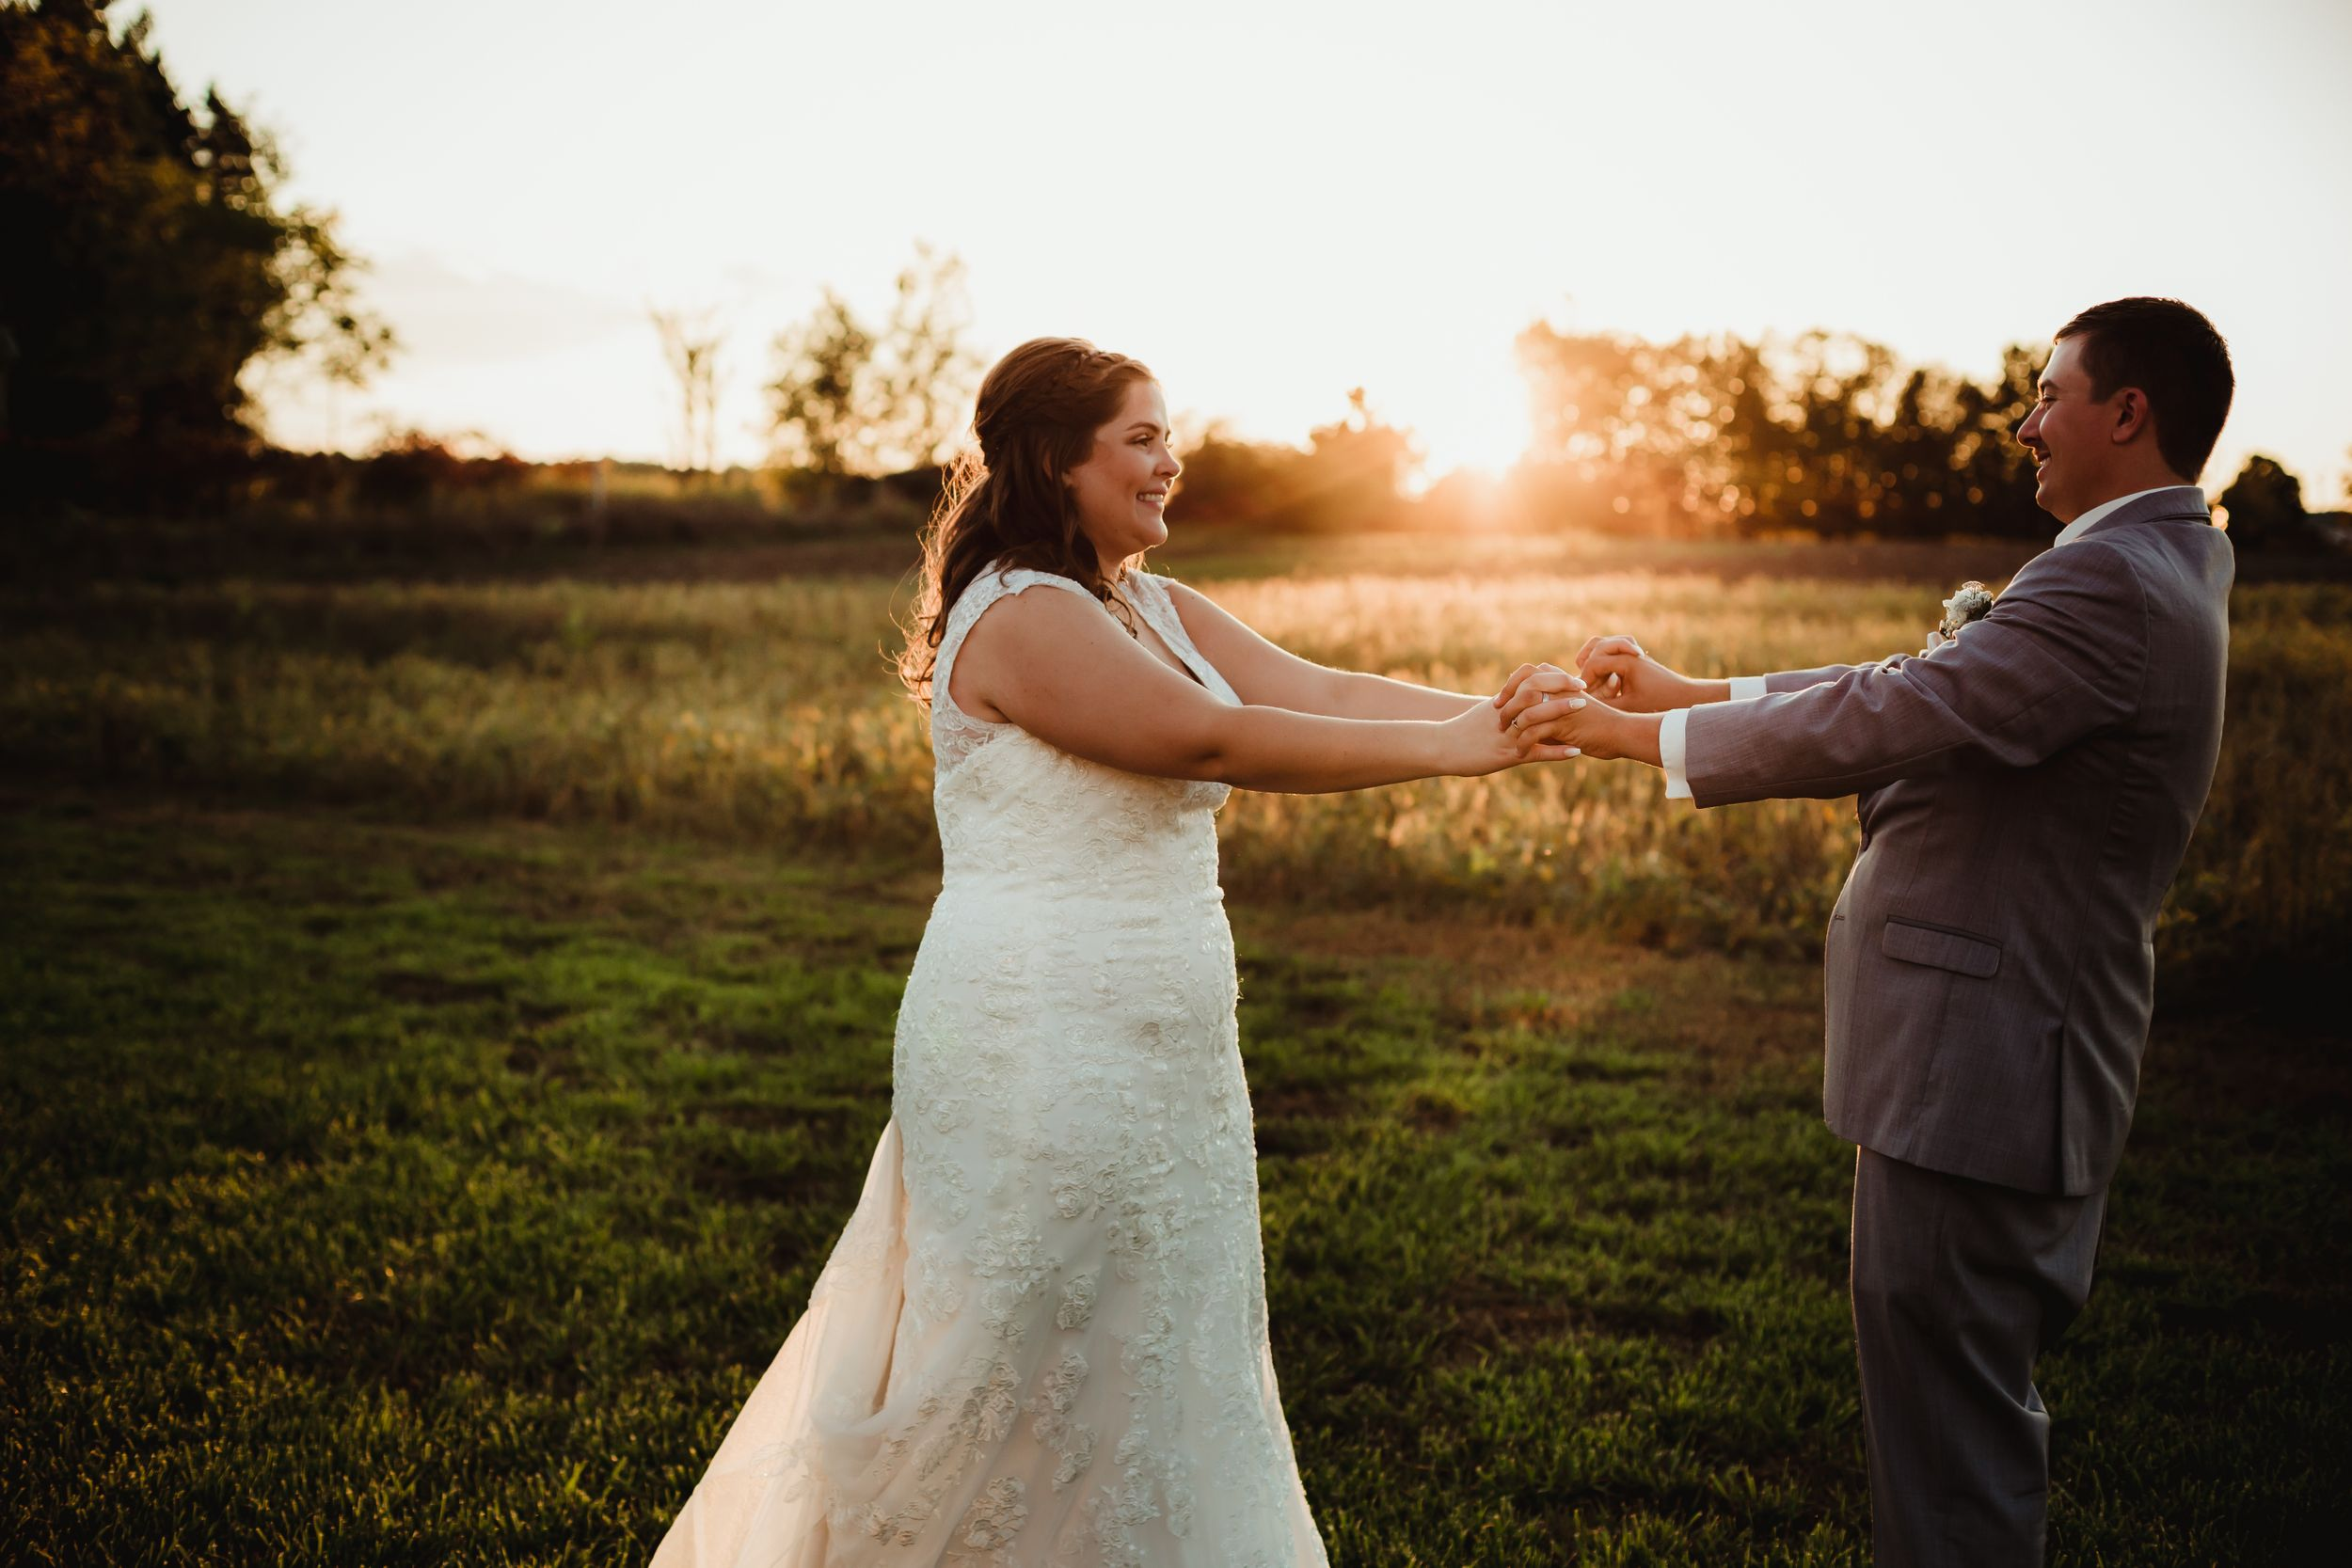 Bride and groom with hands laced together smiling at each other in front of a field at sunset.